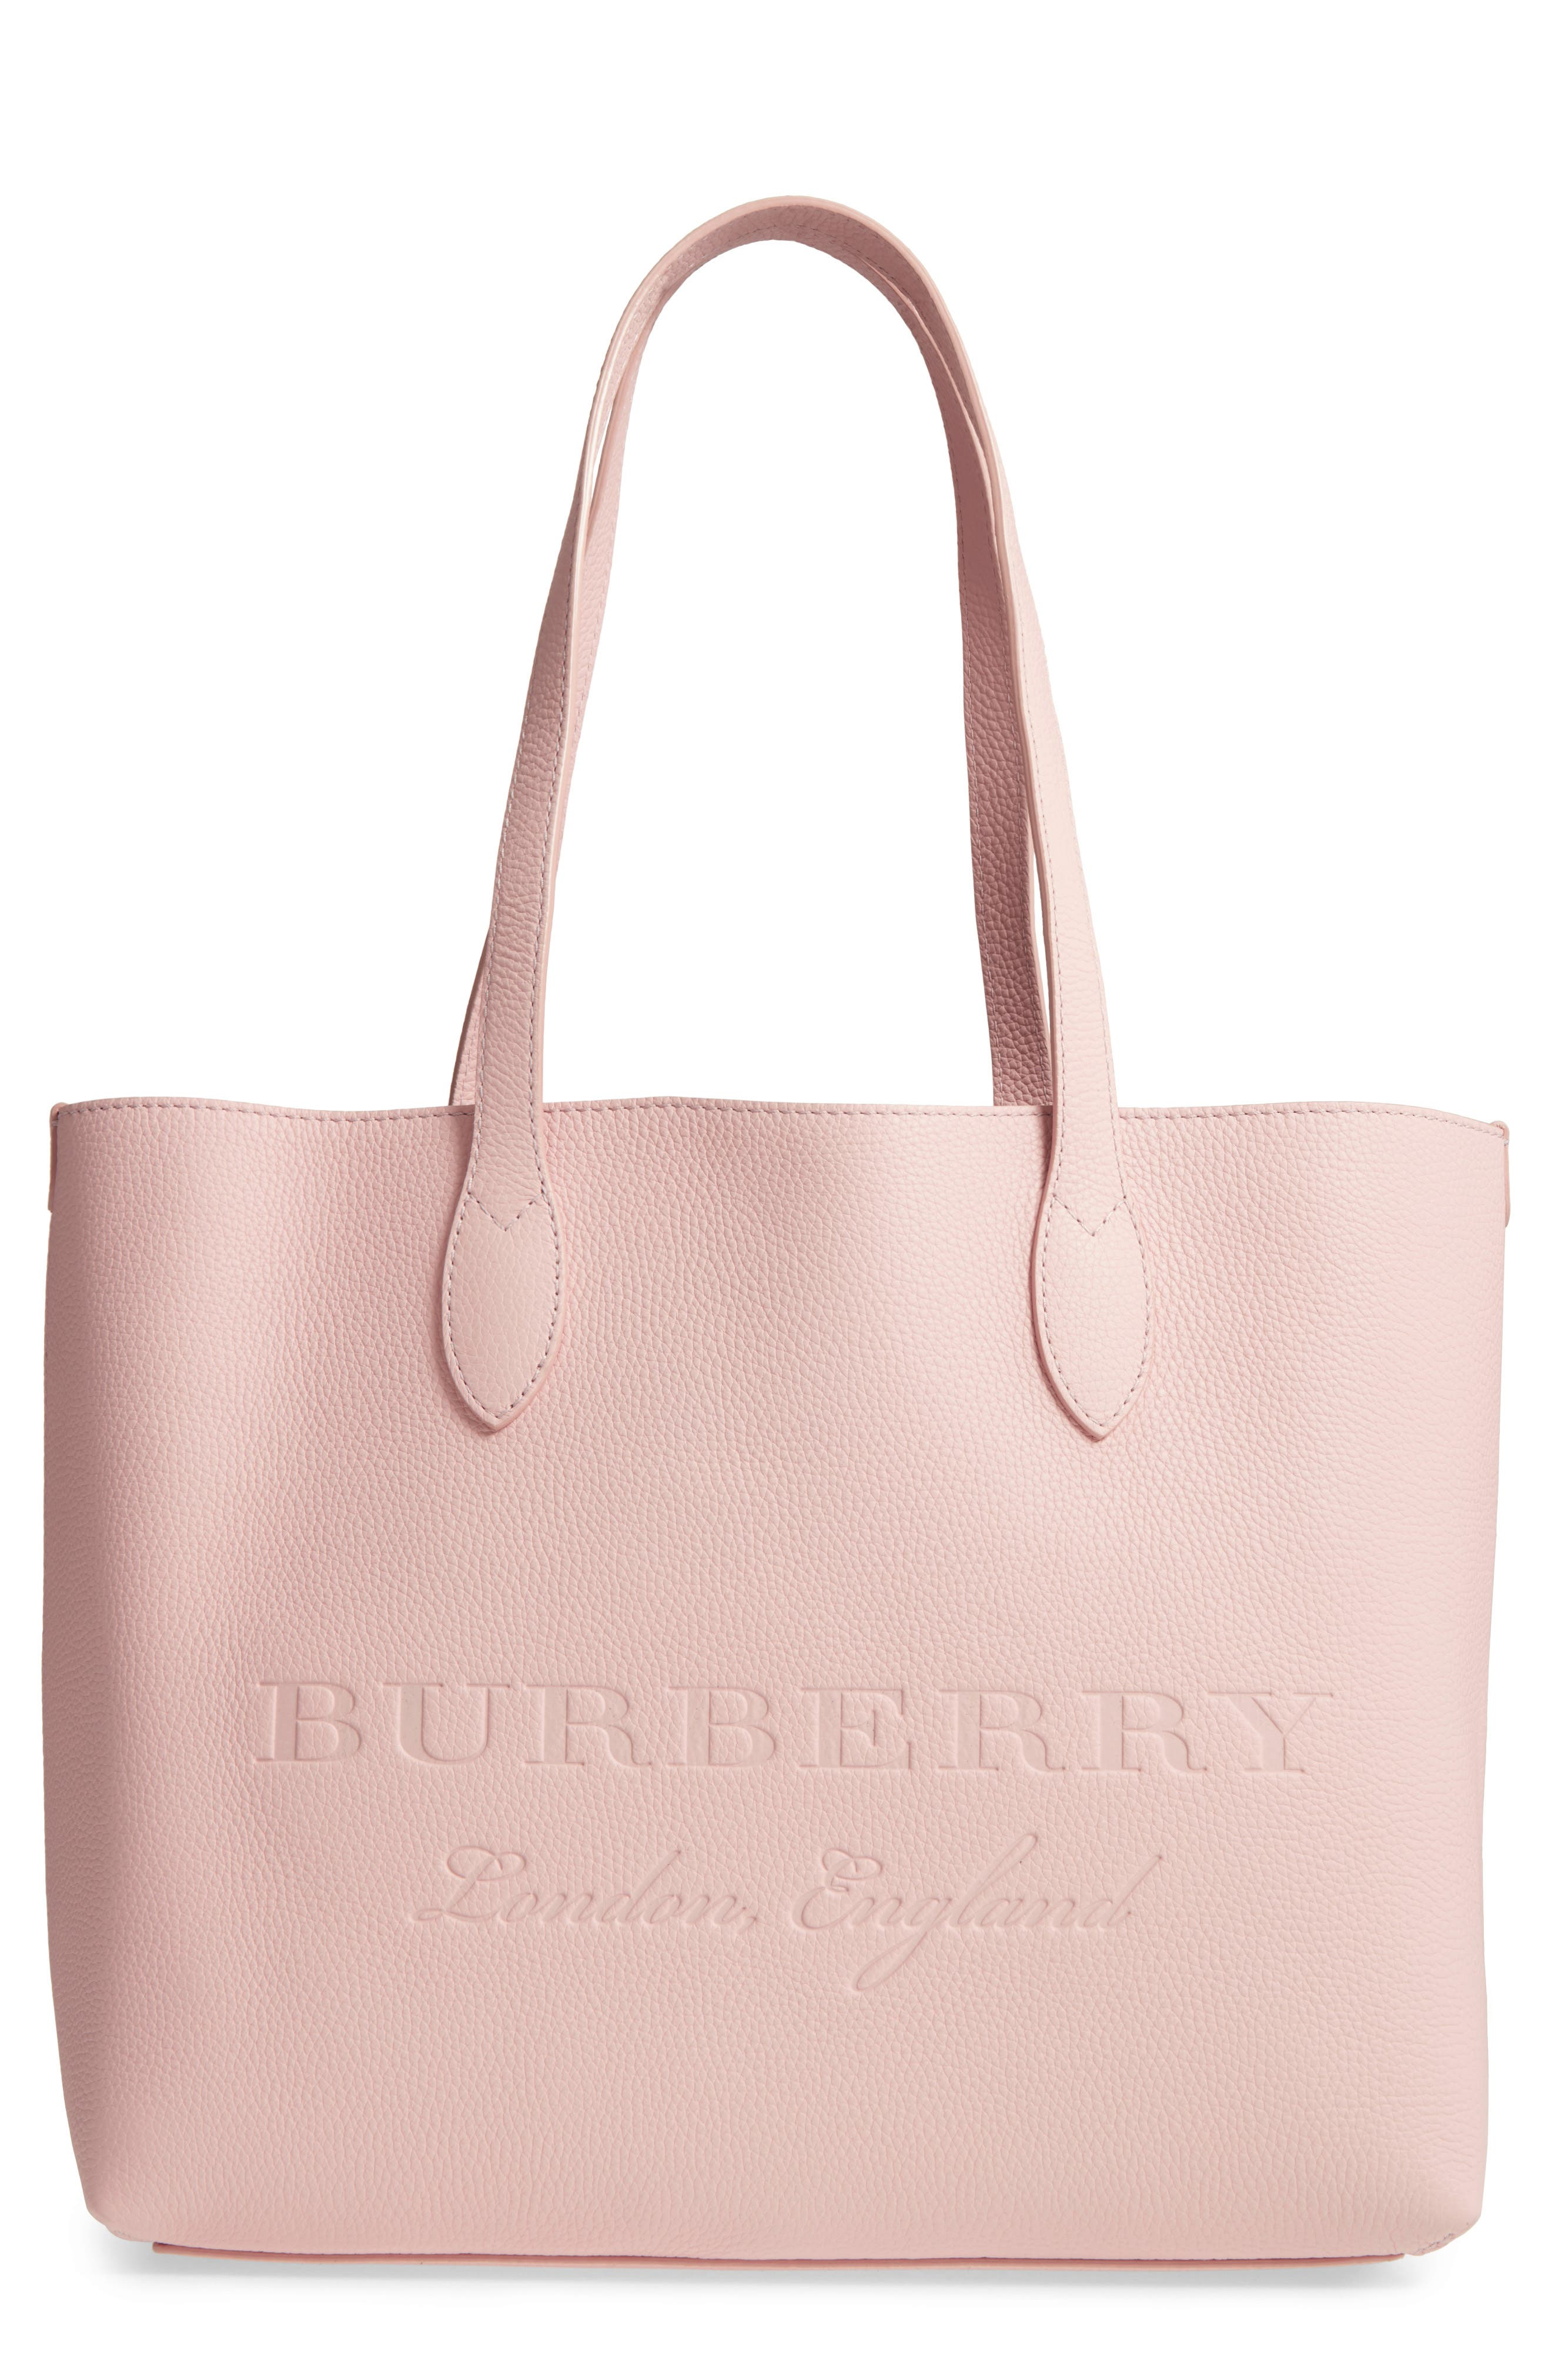 Remington Leather Tote,                             Main thumbnail 1, color,                             Pale Ash Rose